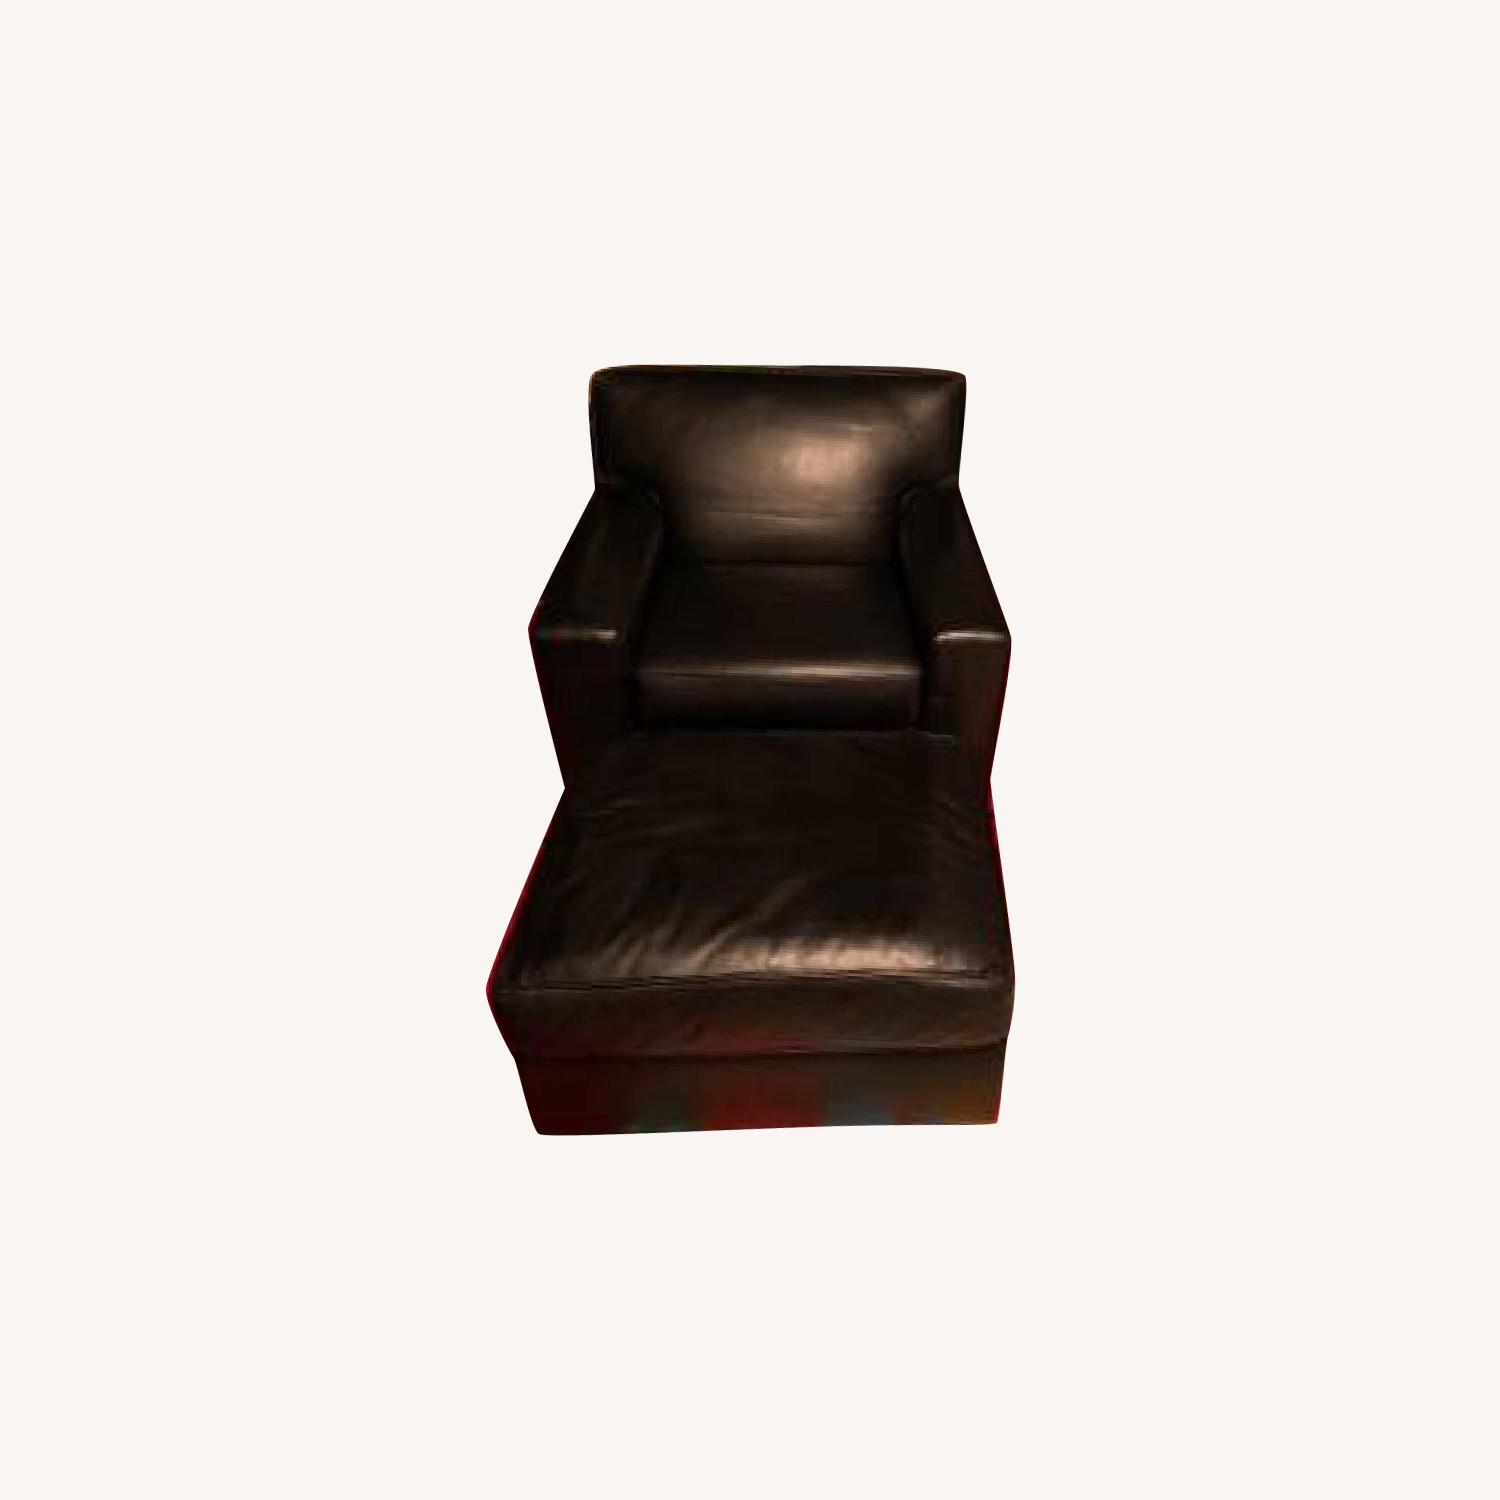 Restoration Hardware Black Leather Chair & Ottoman